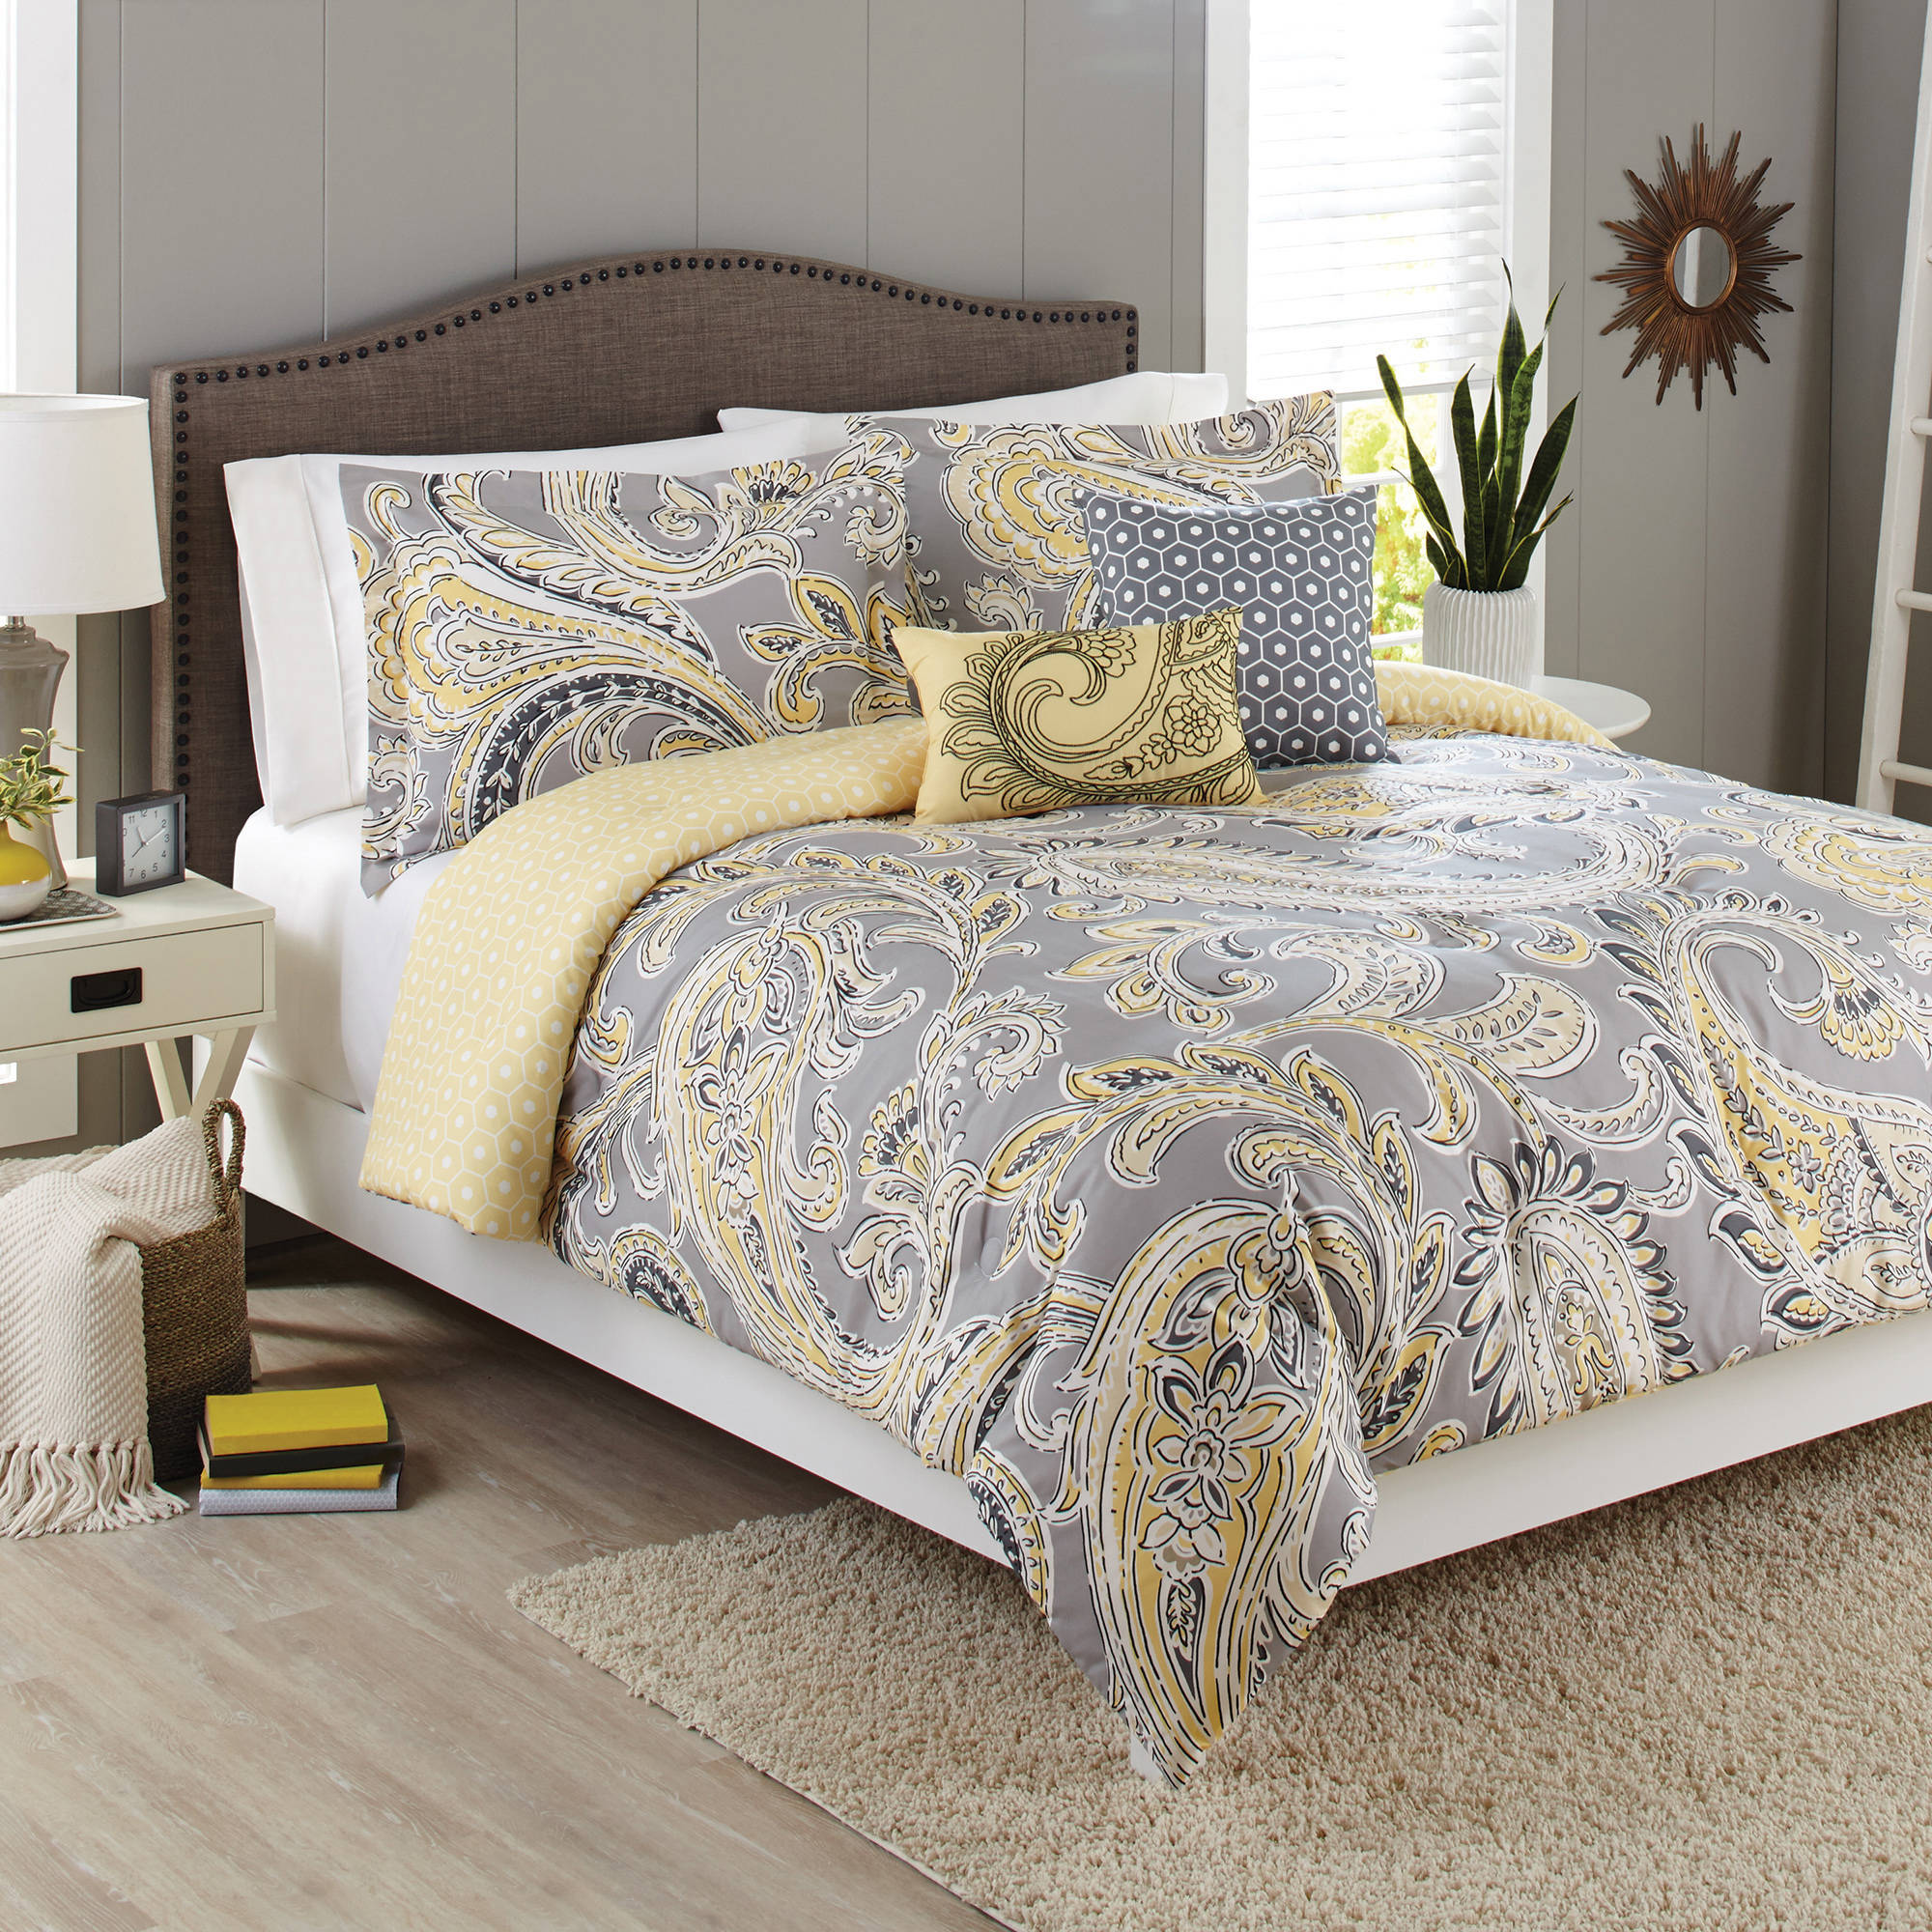 Better Homes and Gardens 5-Piece Bedding Comforter Set, Yellow Grey Paisley